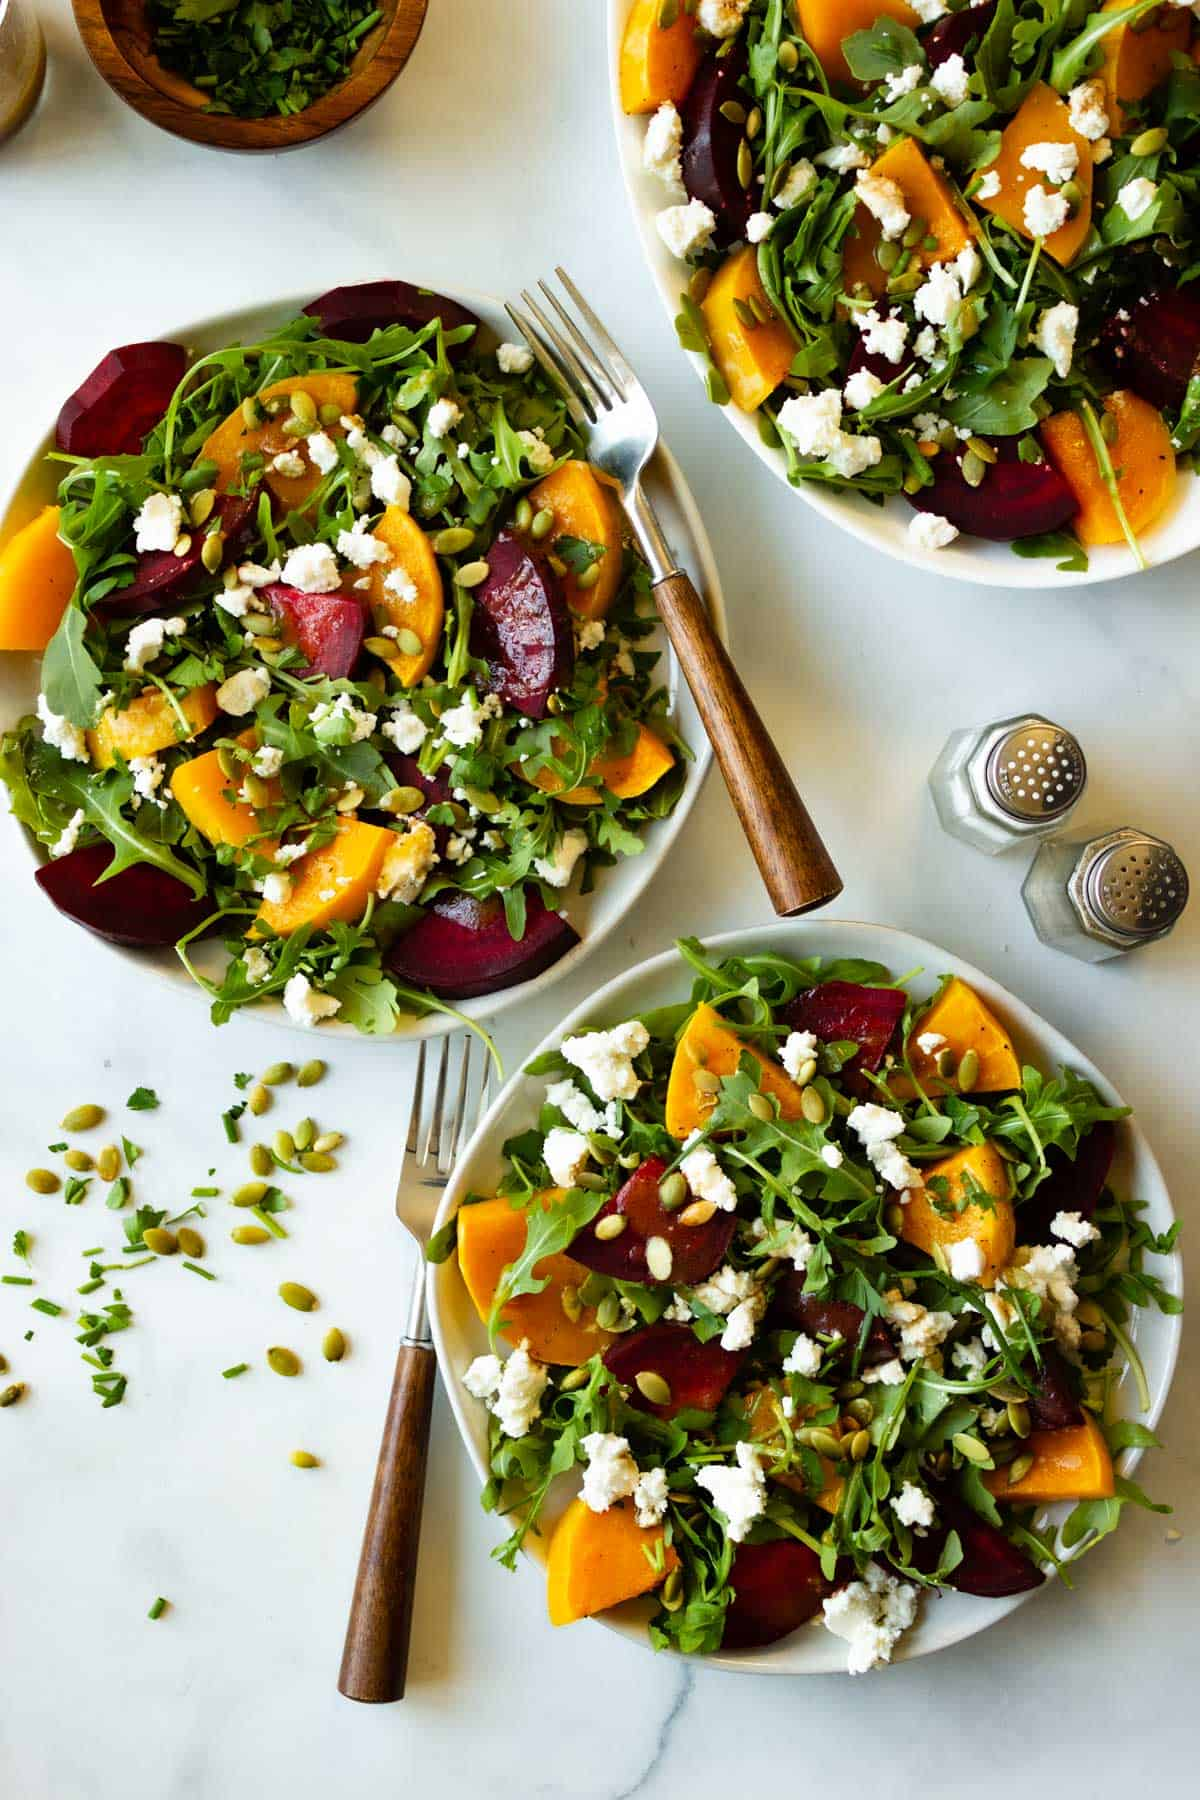 Two servings of beet and butternut squash salad with wooden handled forks.